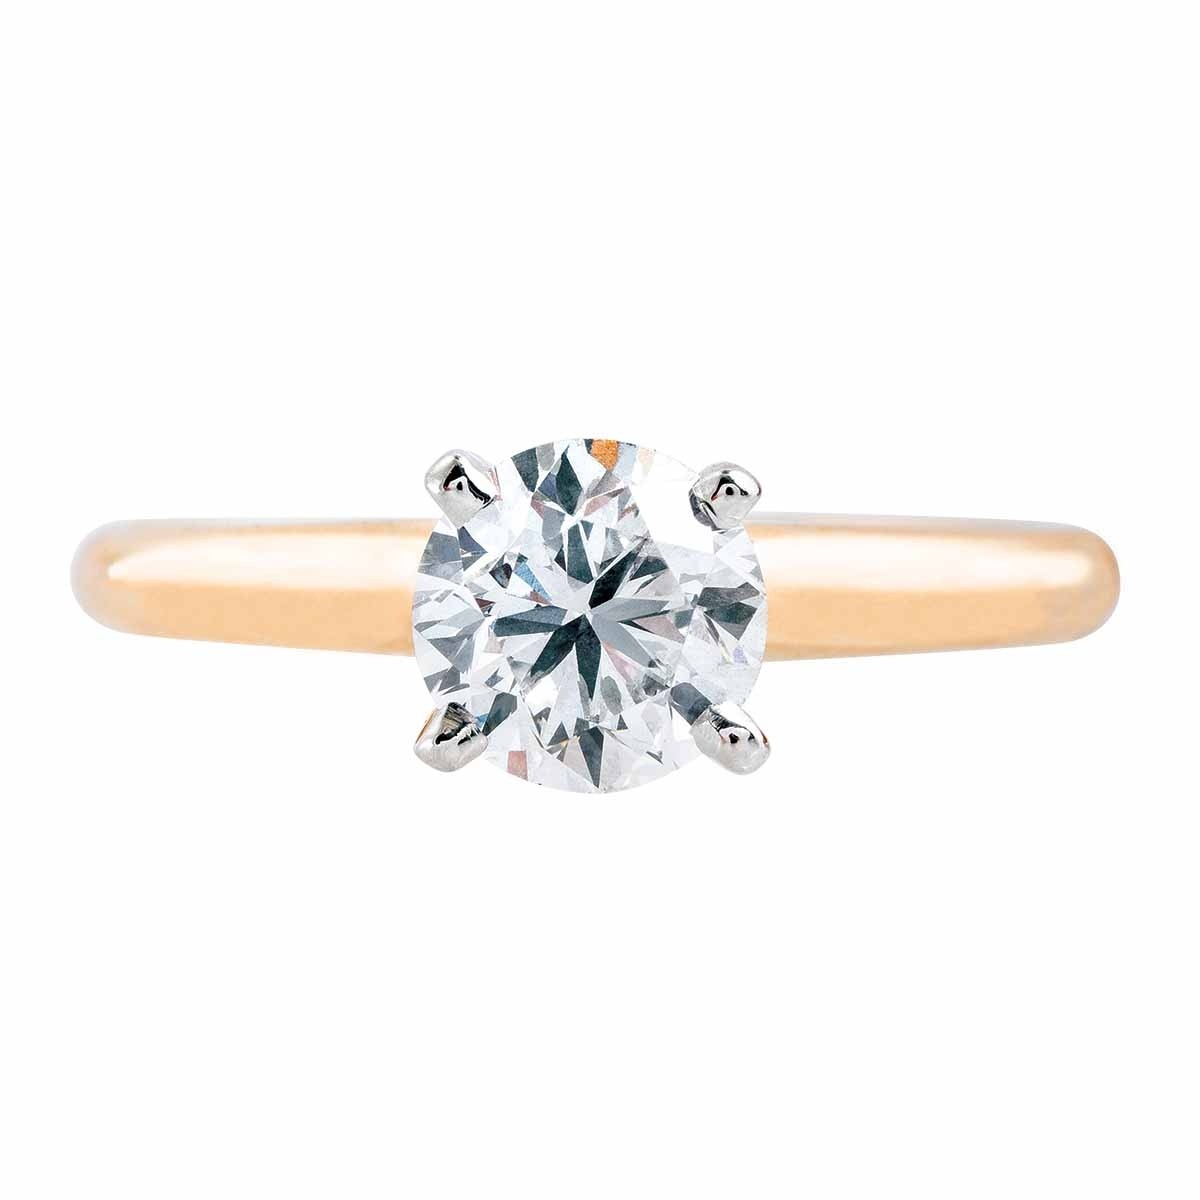 image of engagement ring